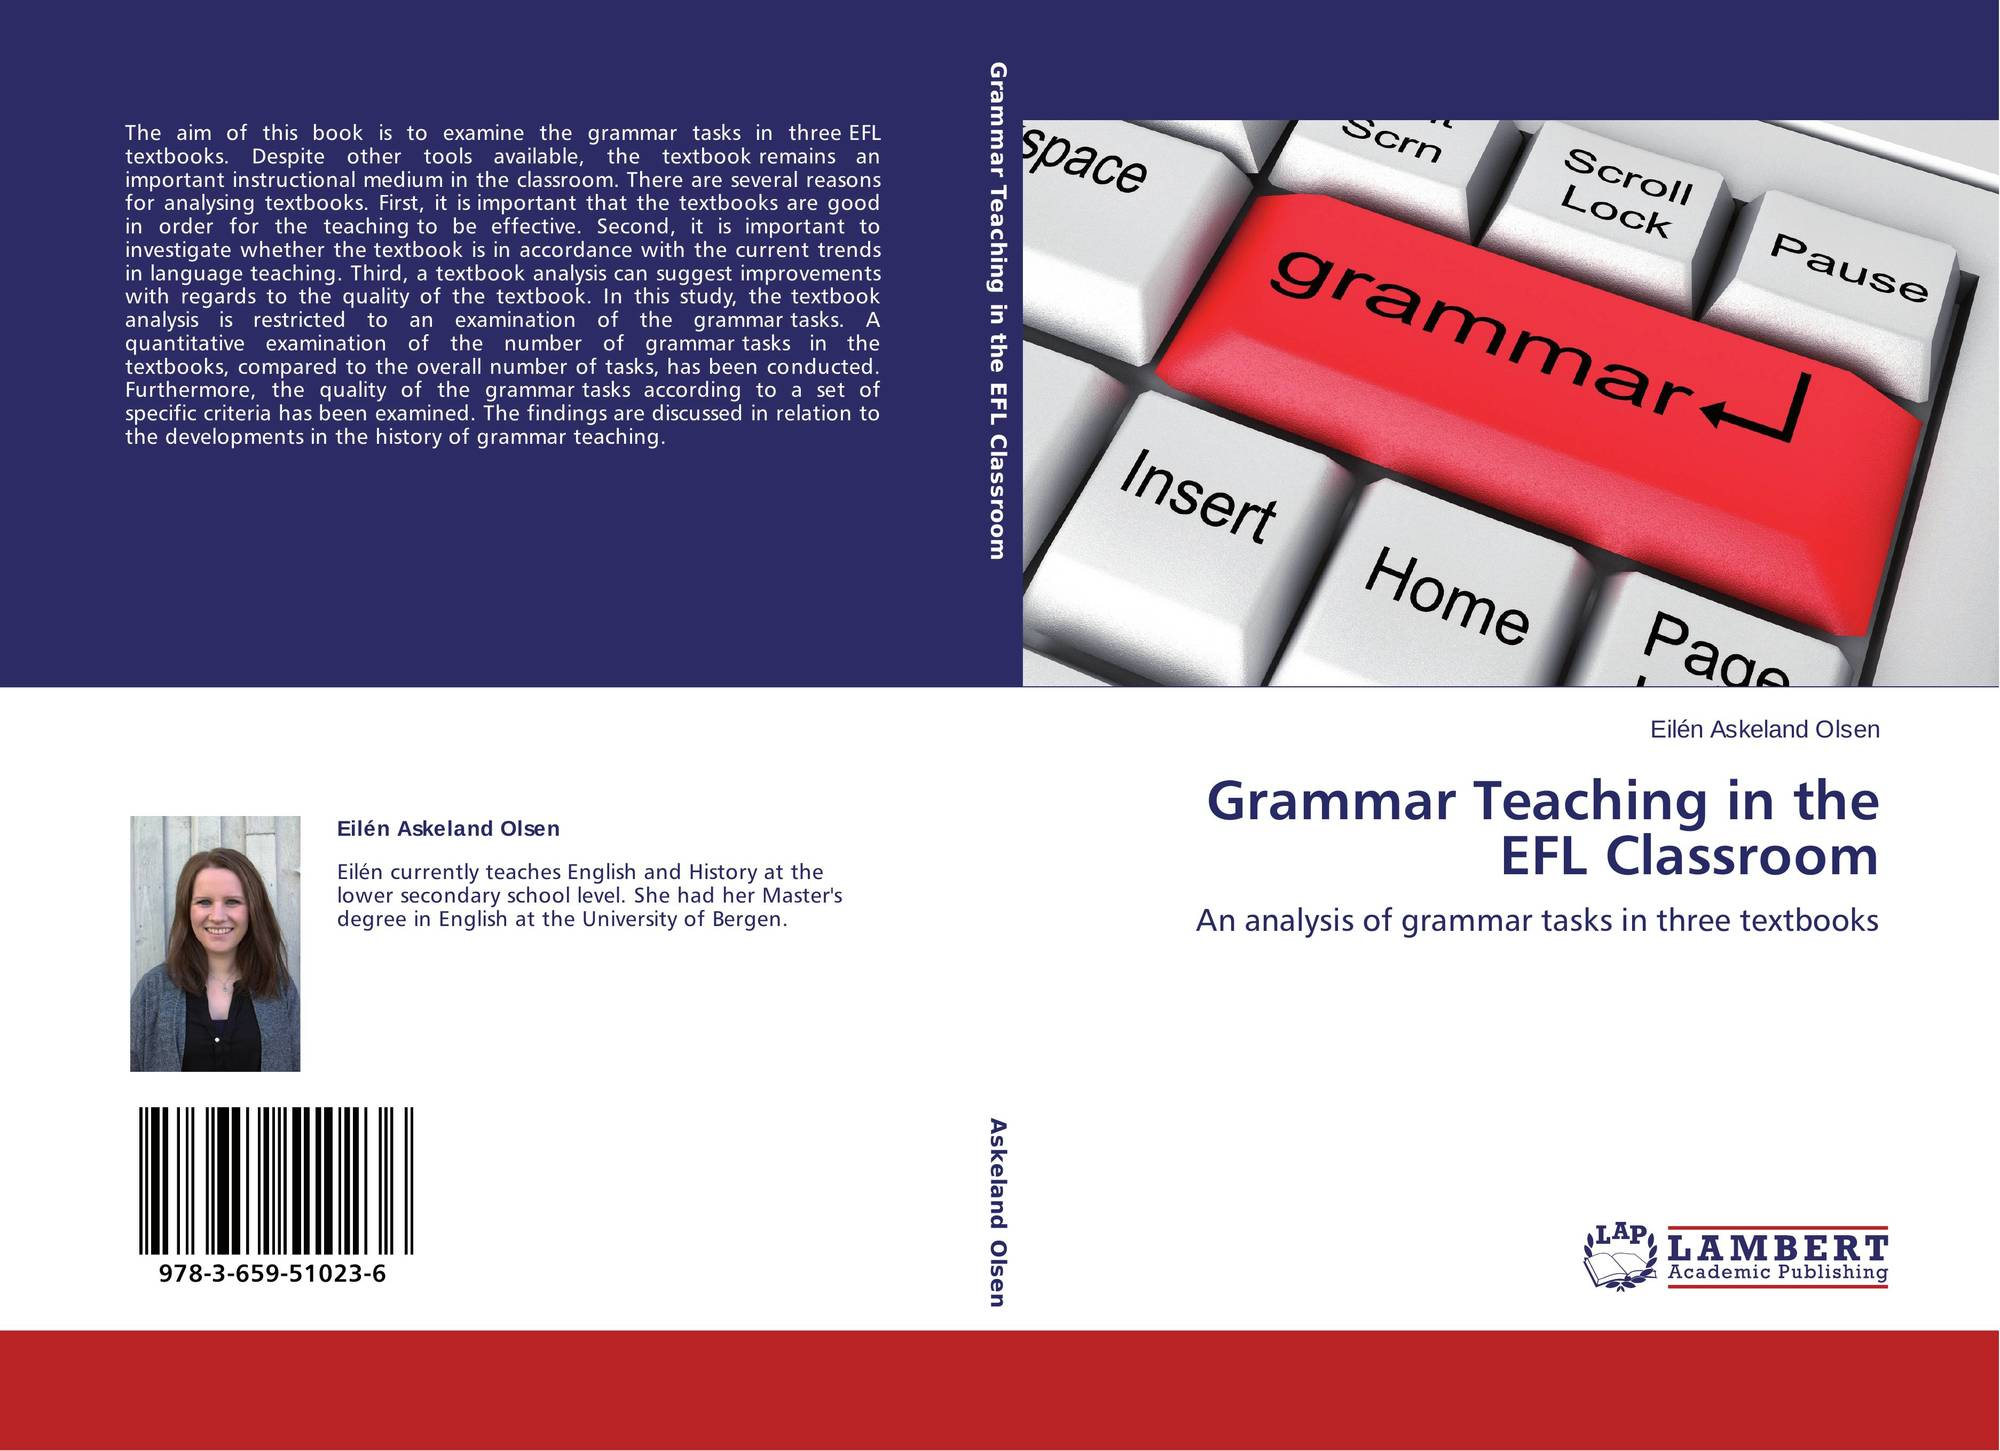 essay on importance of grammar in english language